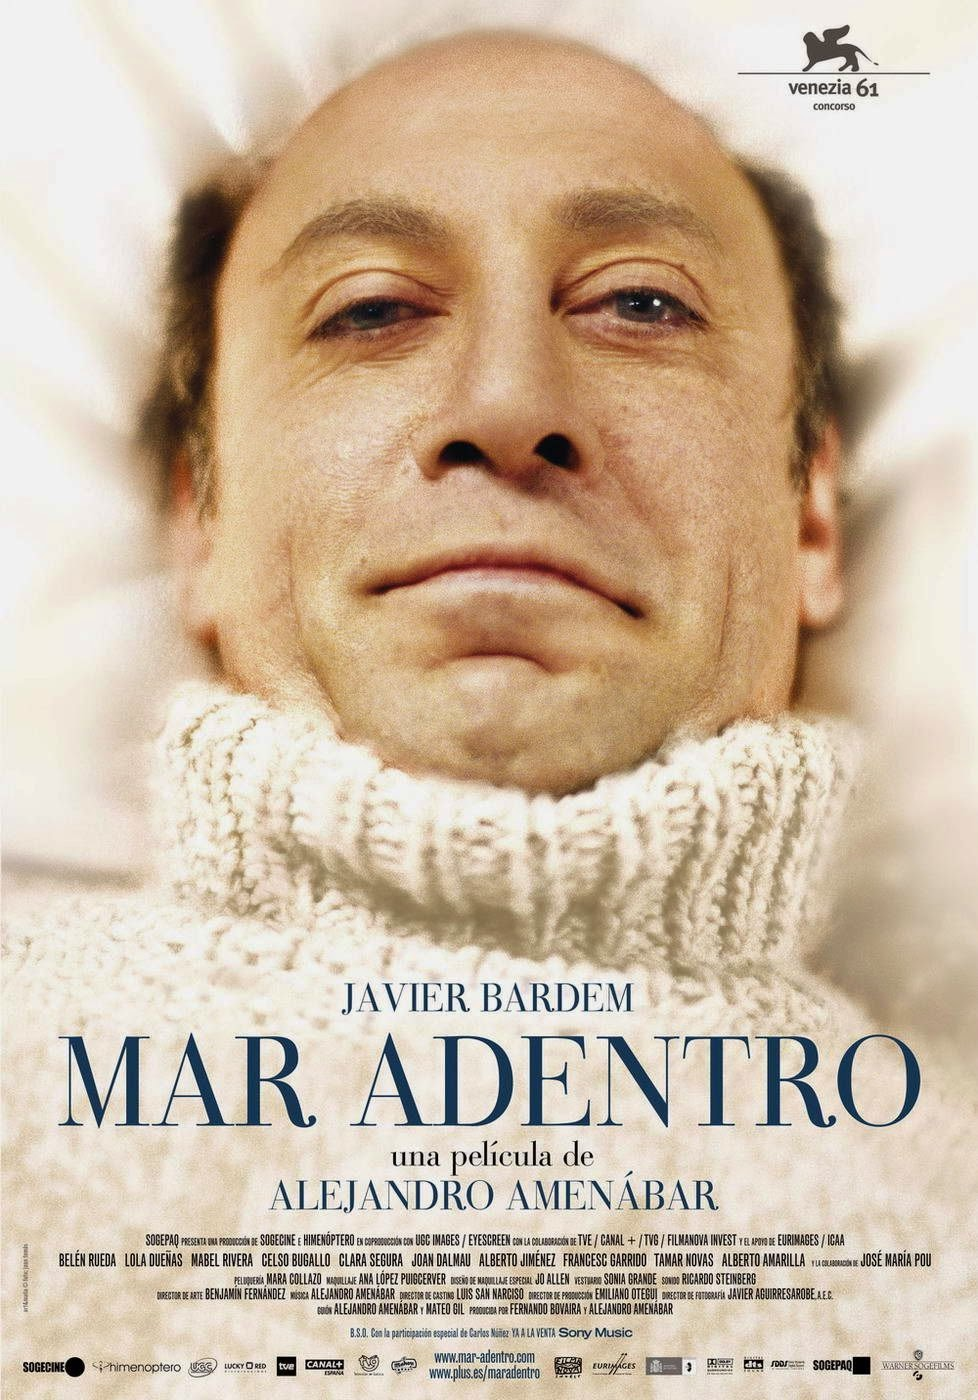 The Sea Inside Mar Adentro film poster